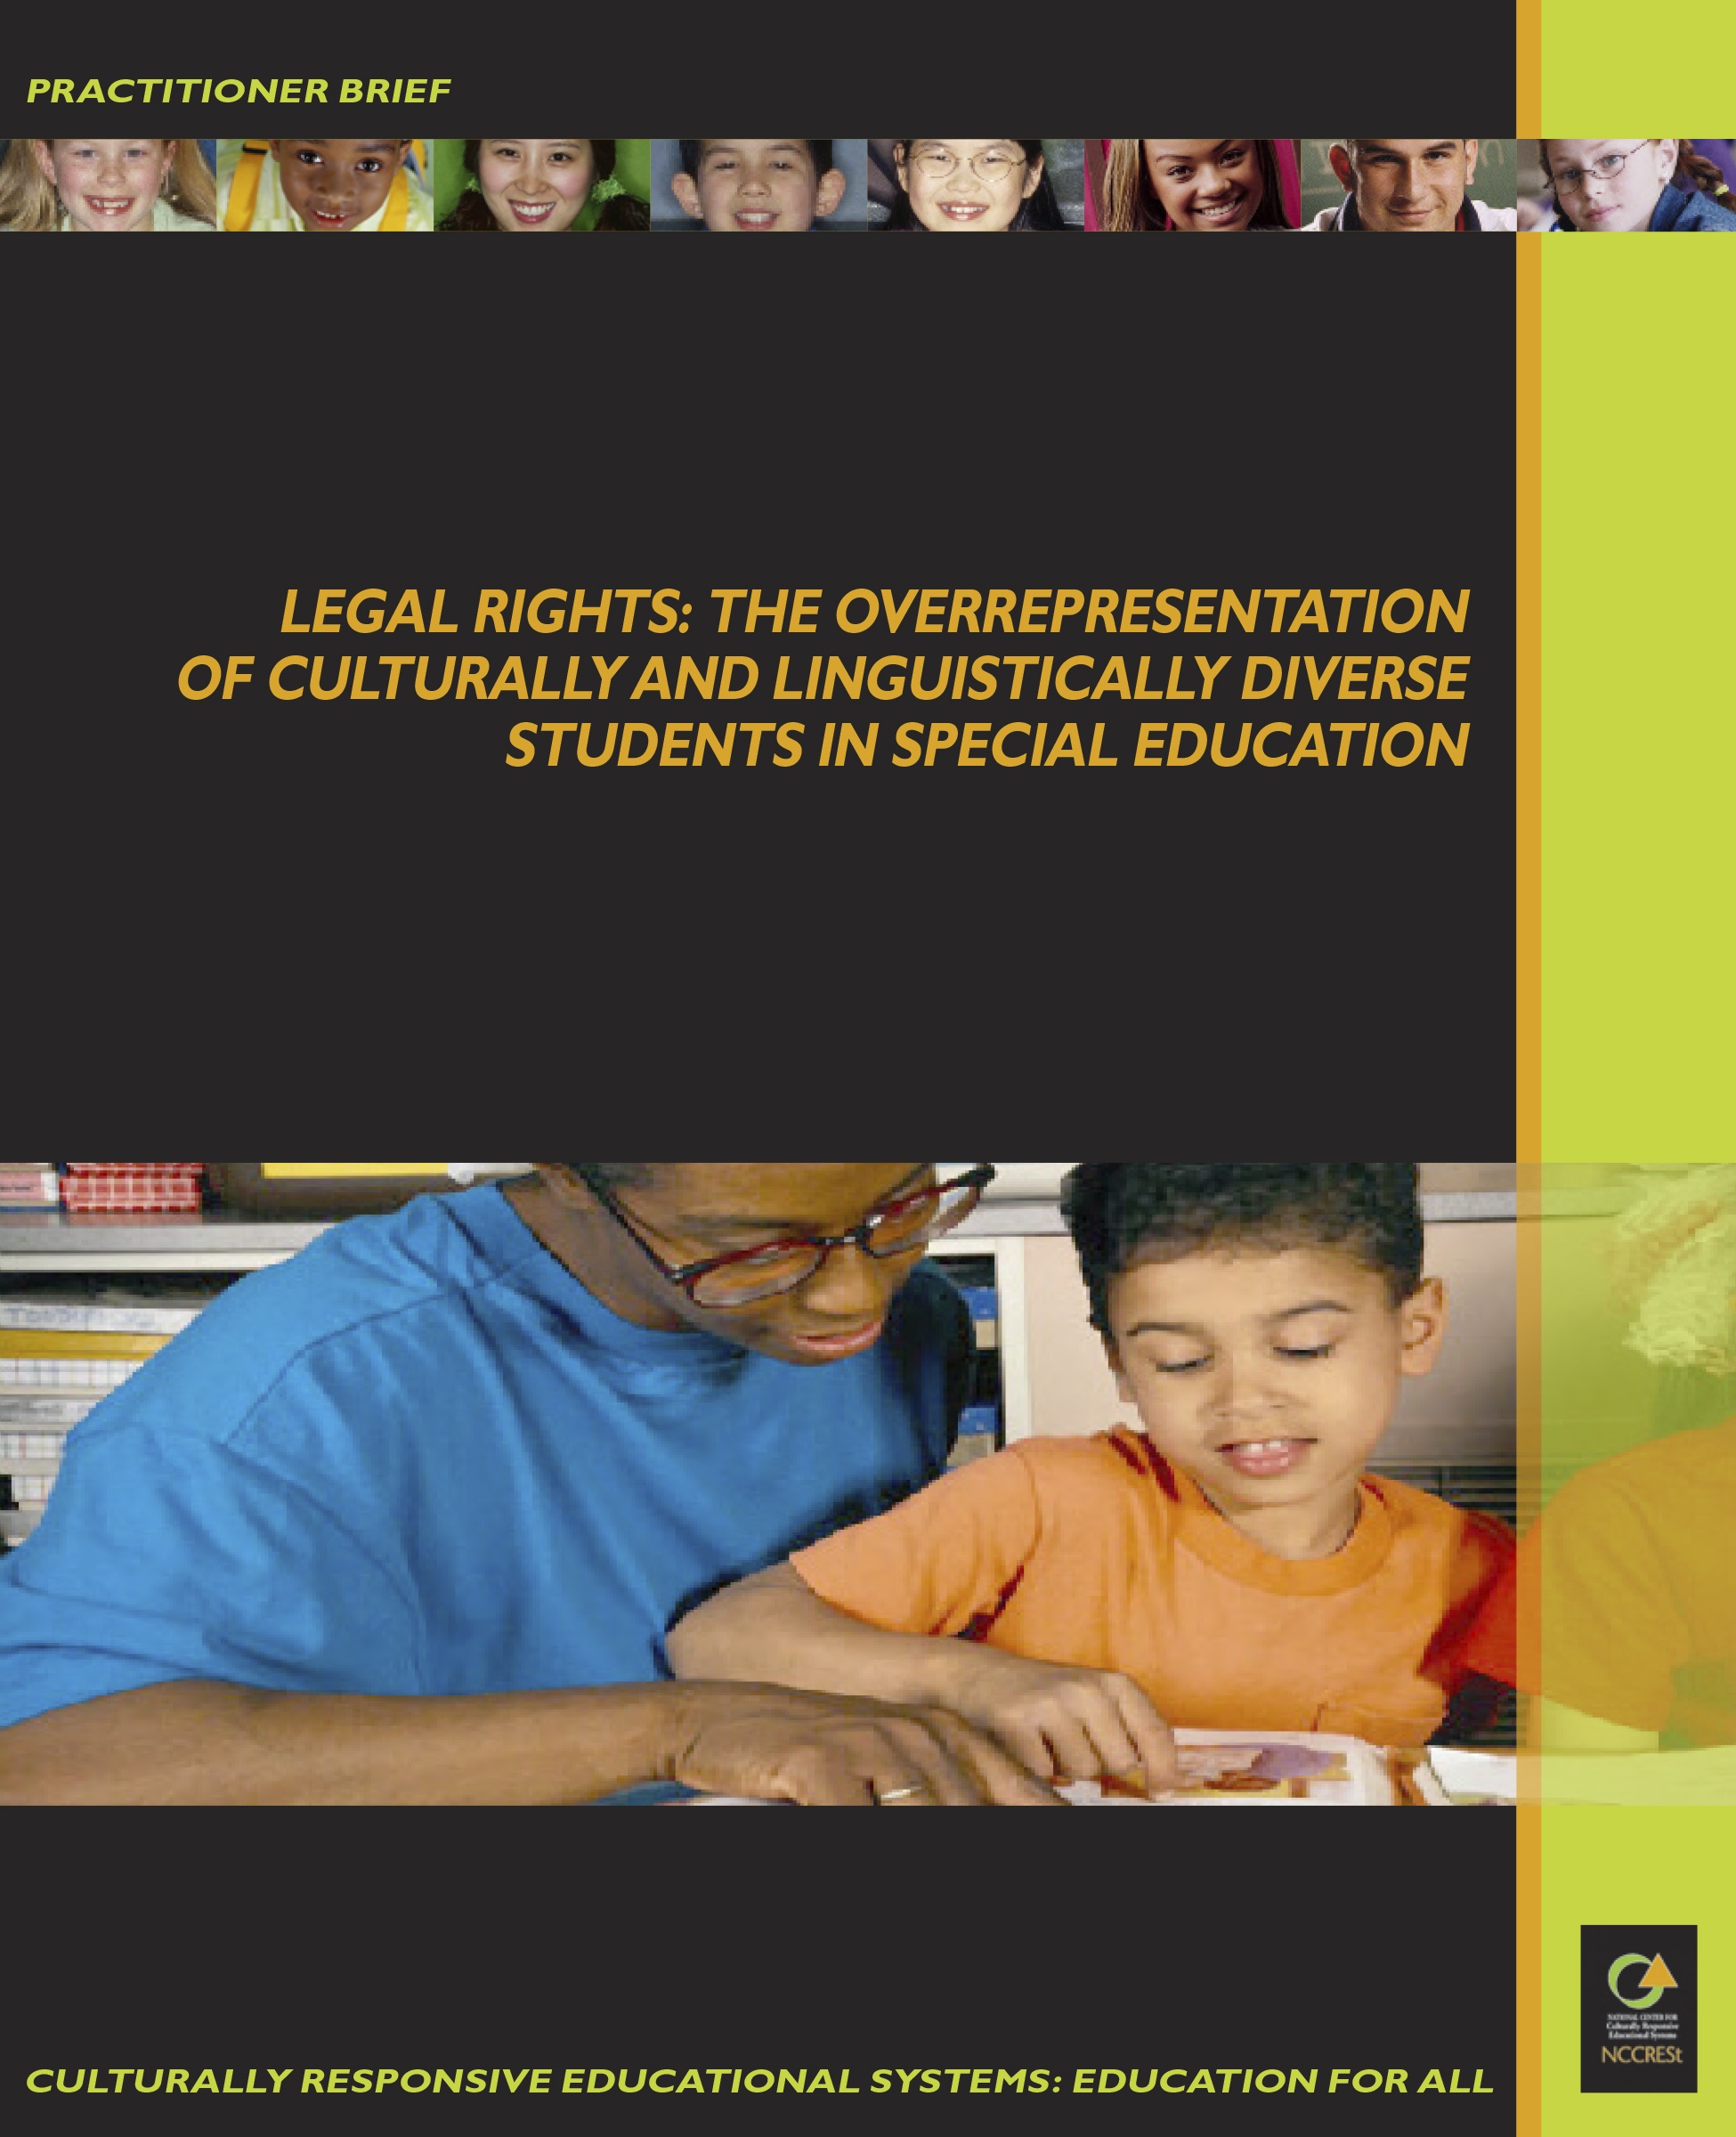 Legal_Rights_CLD_in_SpEd-1.jpg